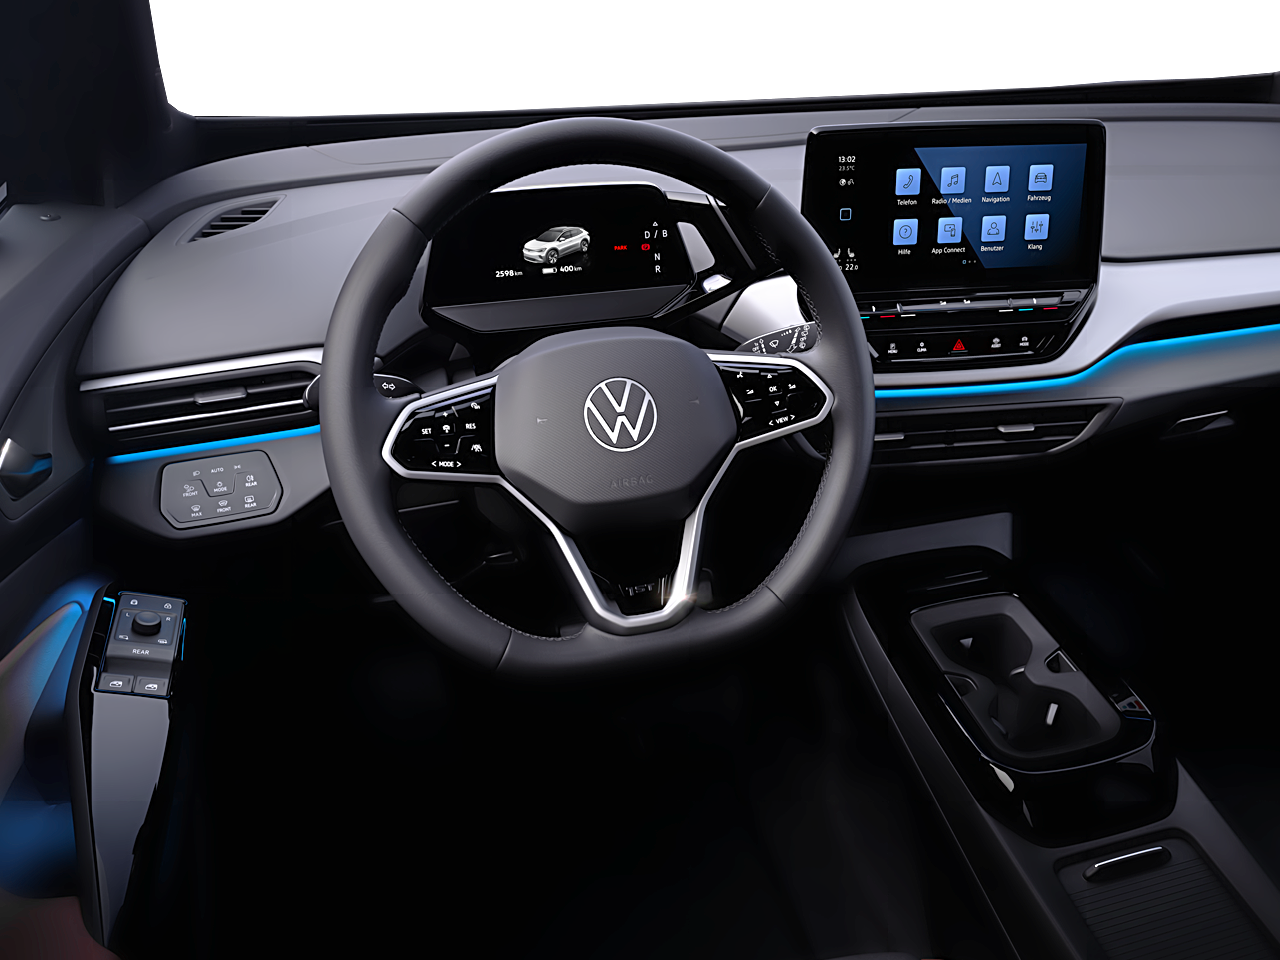 Interior view of the Volkswagen ID.4